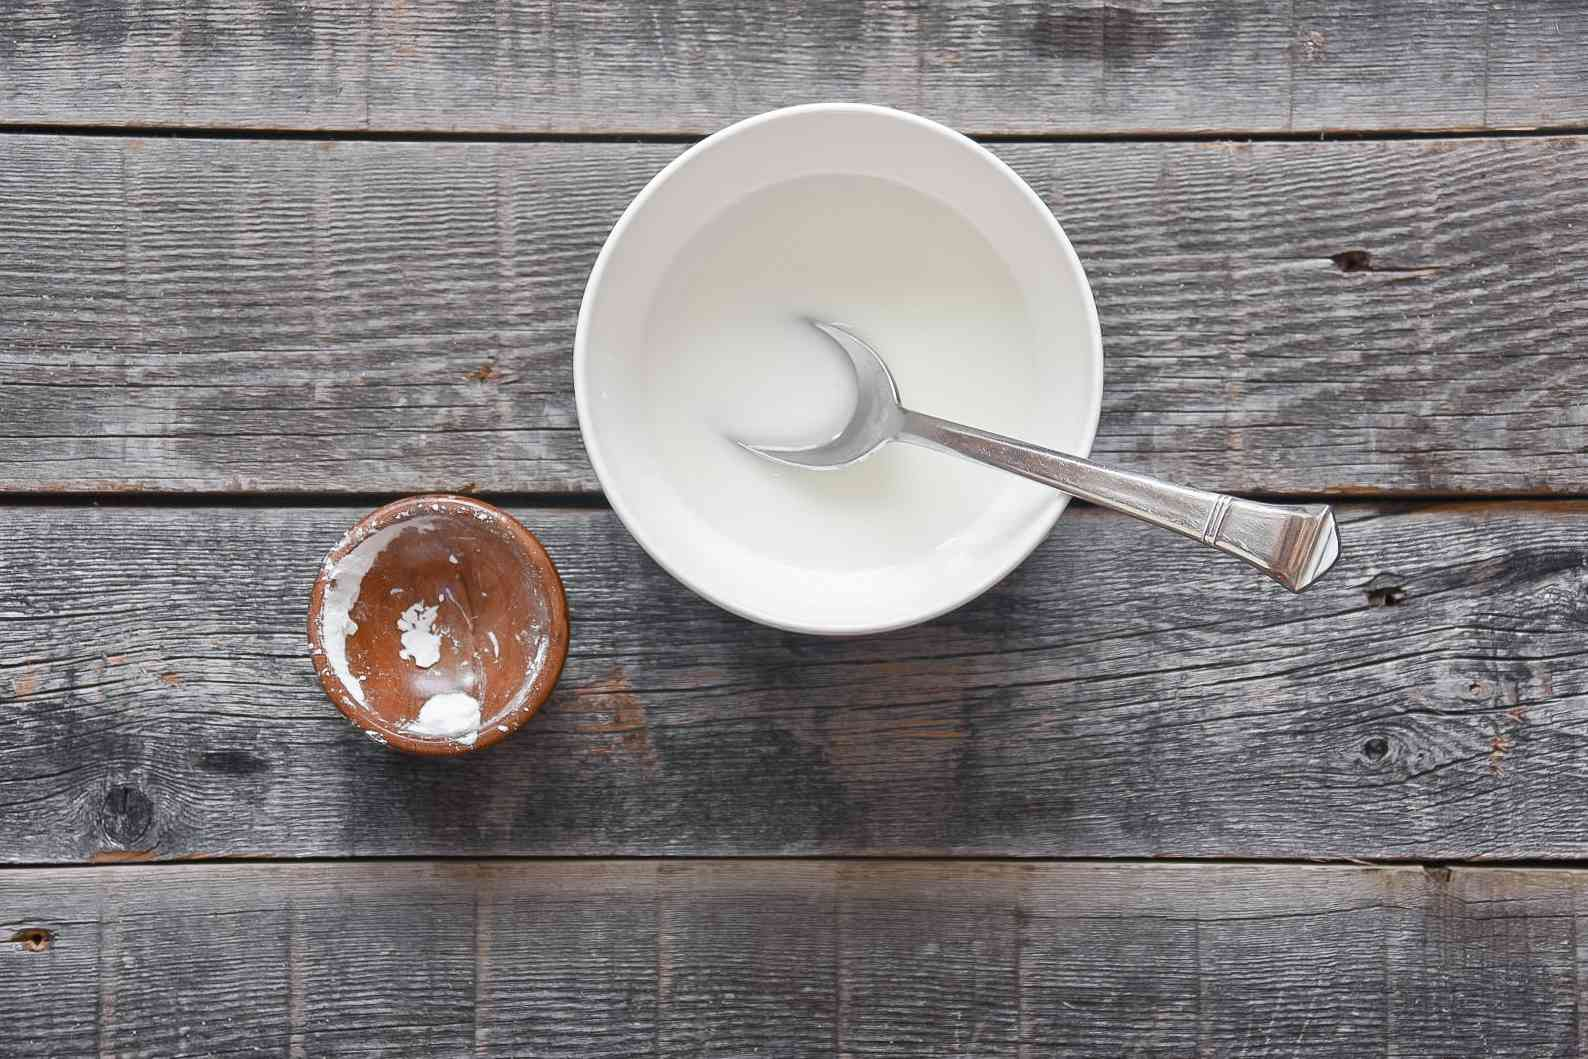 Cornstarch and water in a small white bowl, stirred with a metal spoon